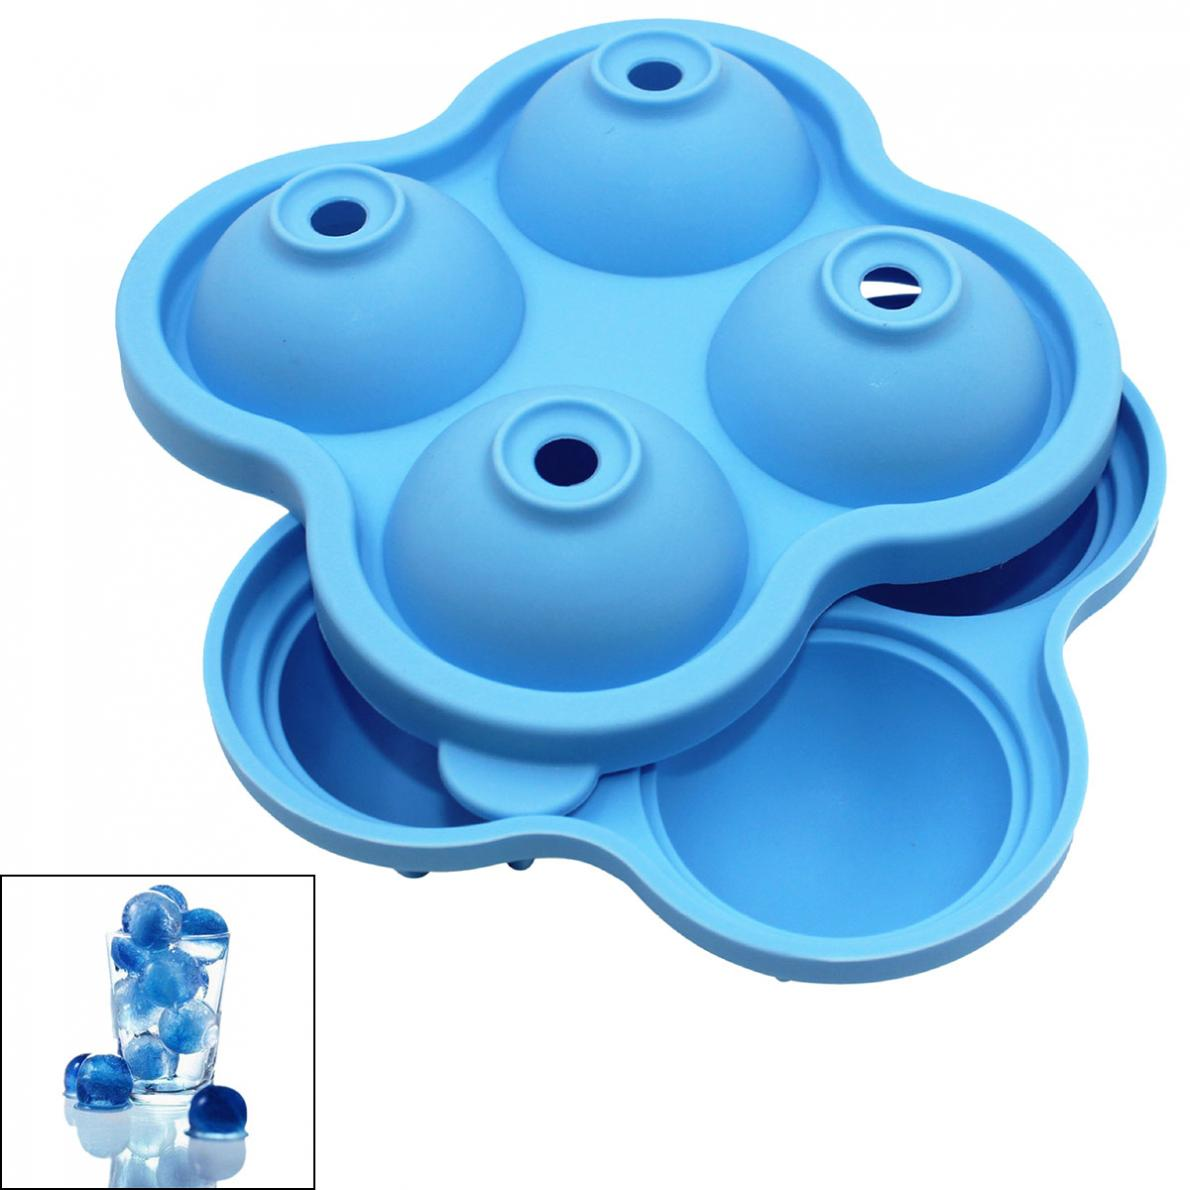 2pcs/lot Silicone Ice Cube Tray Whiskey Cocktail Ice Ball Maker With 4 Grids For Ice Cream Tool